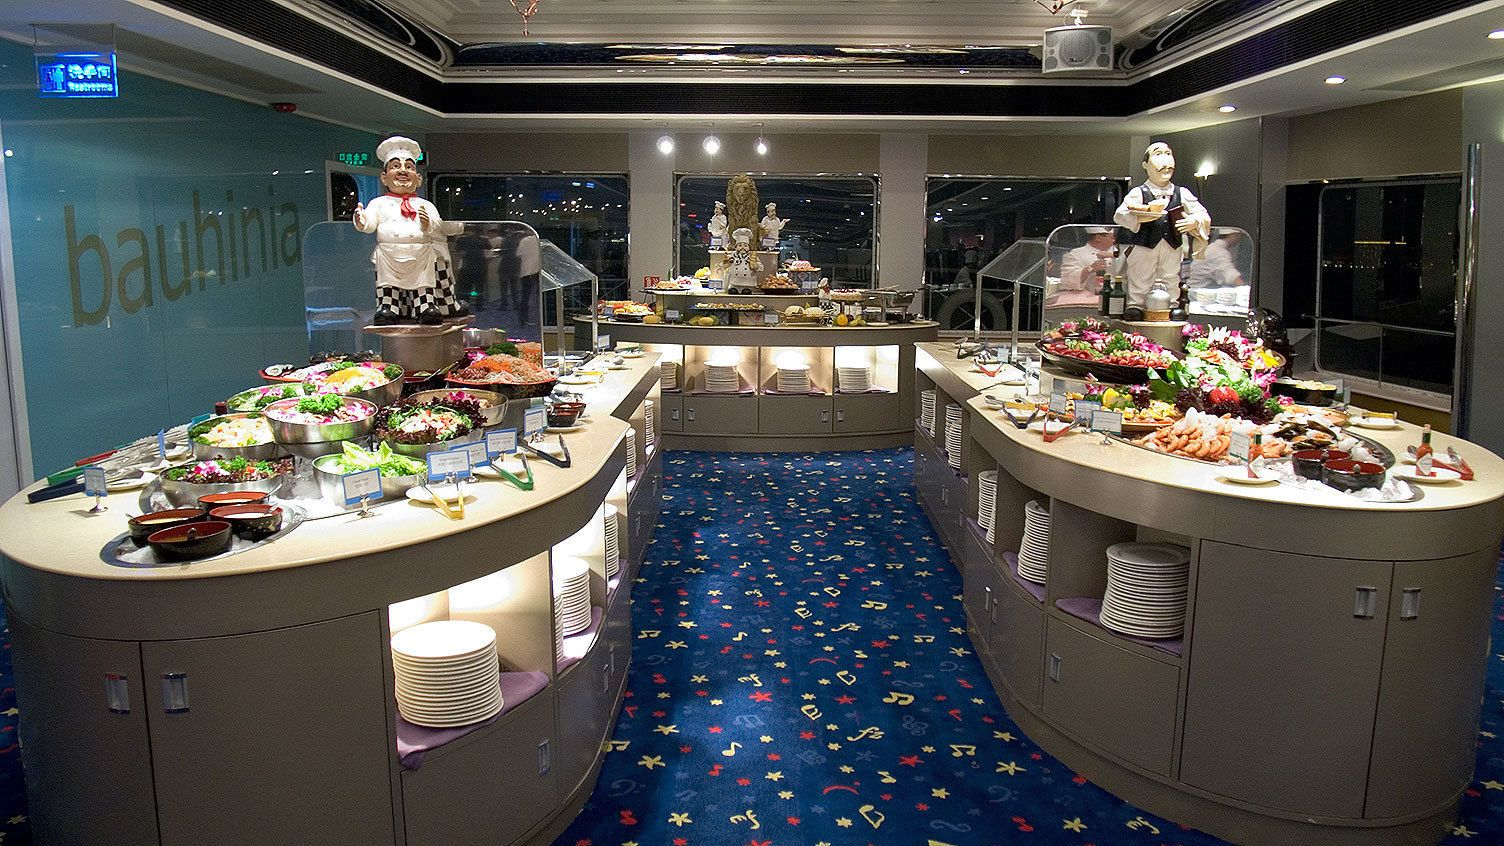 Open buffet style dinner in Hong Kong